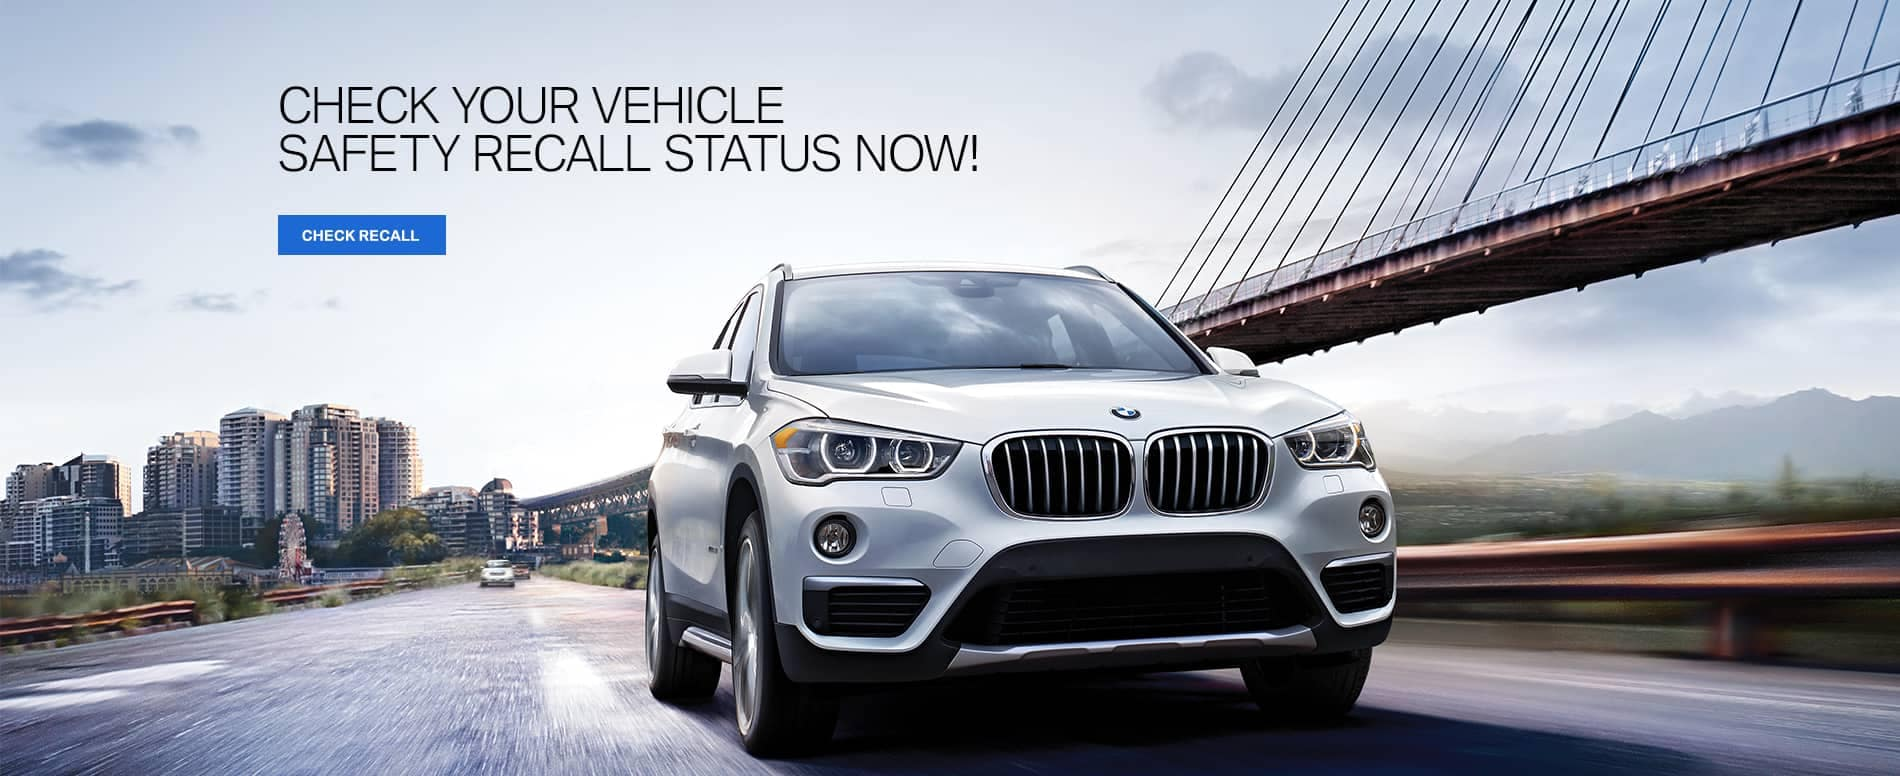 Bmw Dealership Near Me >> Moss Bmw New Certified Pre Owned Bmw Dealer Serving